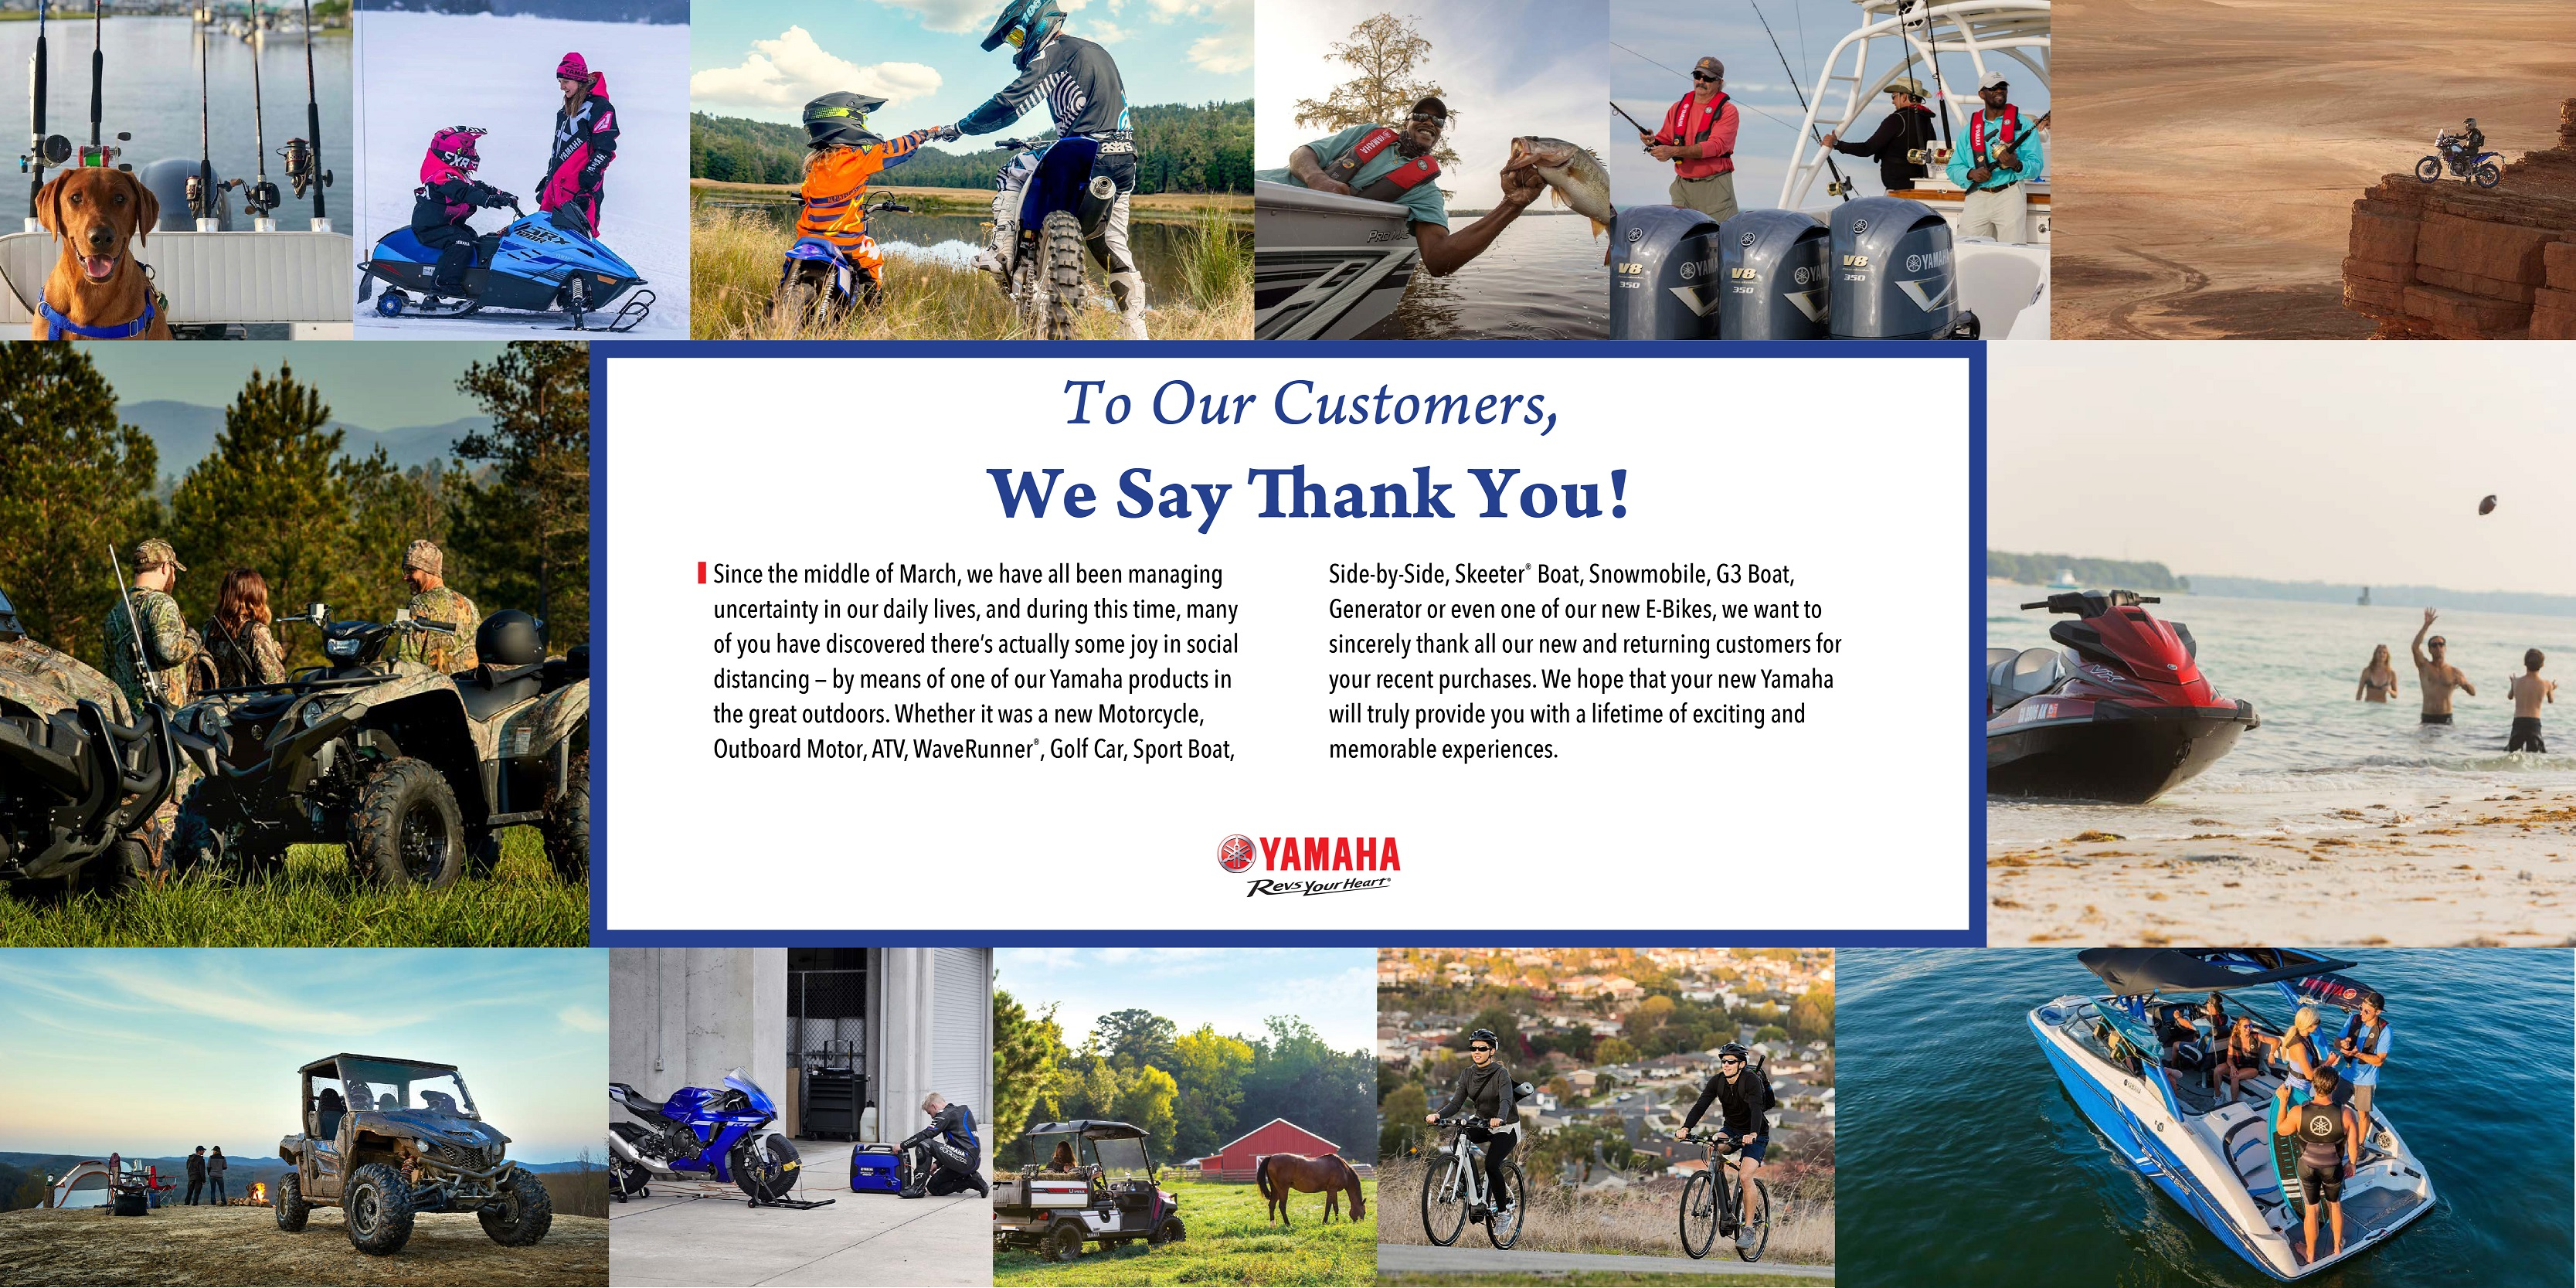 Yamaha says Thank You!